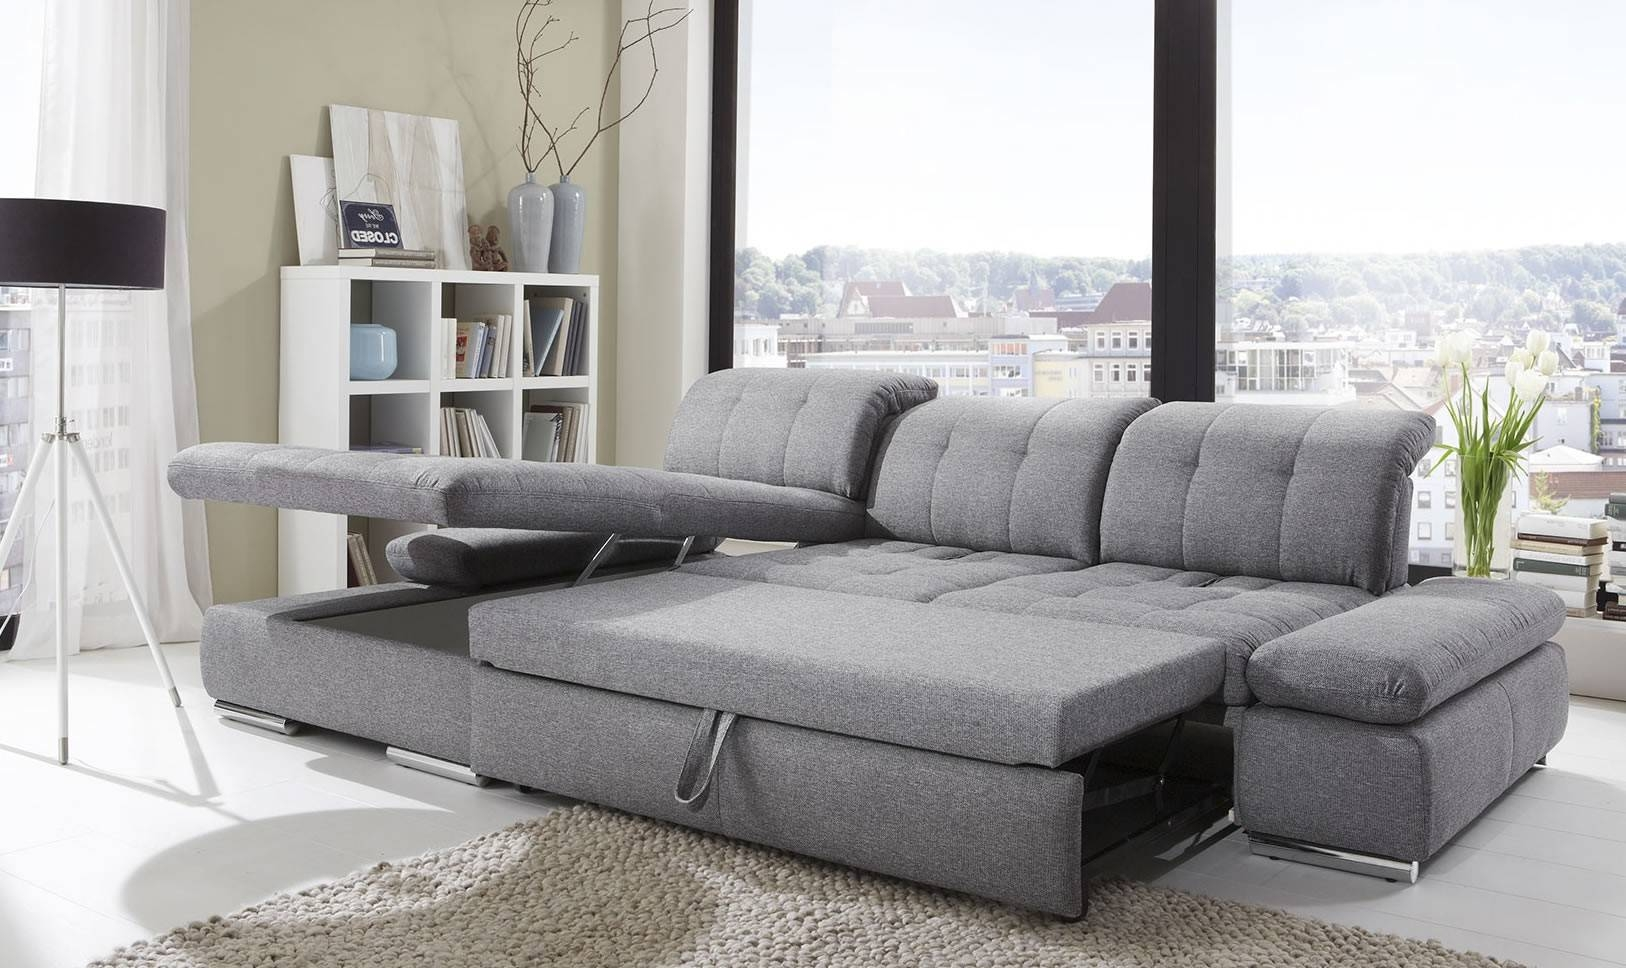 Sectional Queen Sleeper Sofa Bed | Latest Home Decor And Design Throughout Sleeper Sofas San Diego (View 16 of 25)